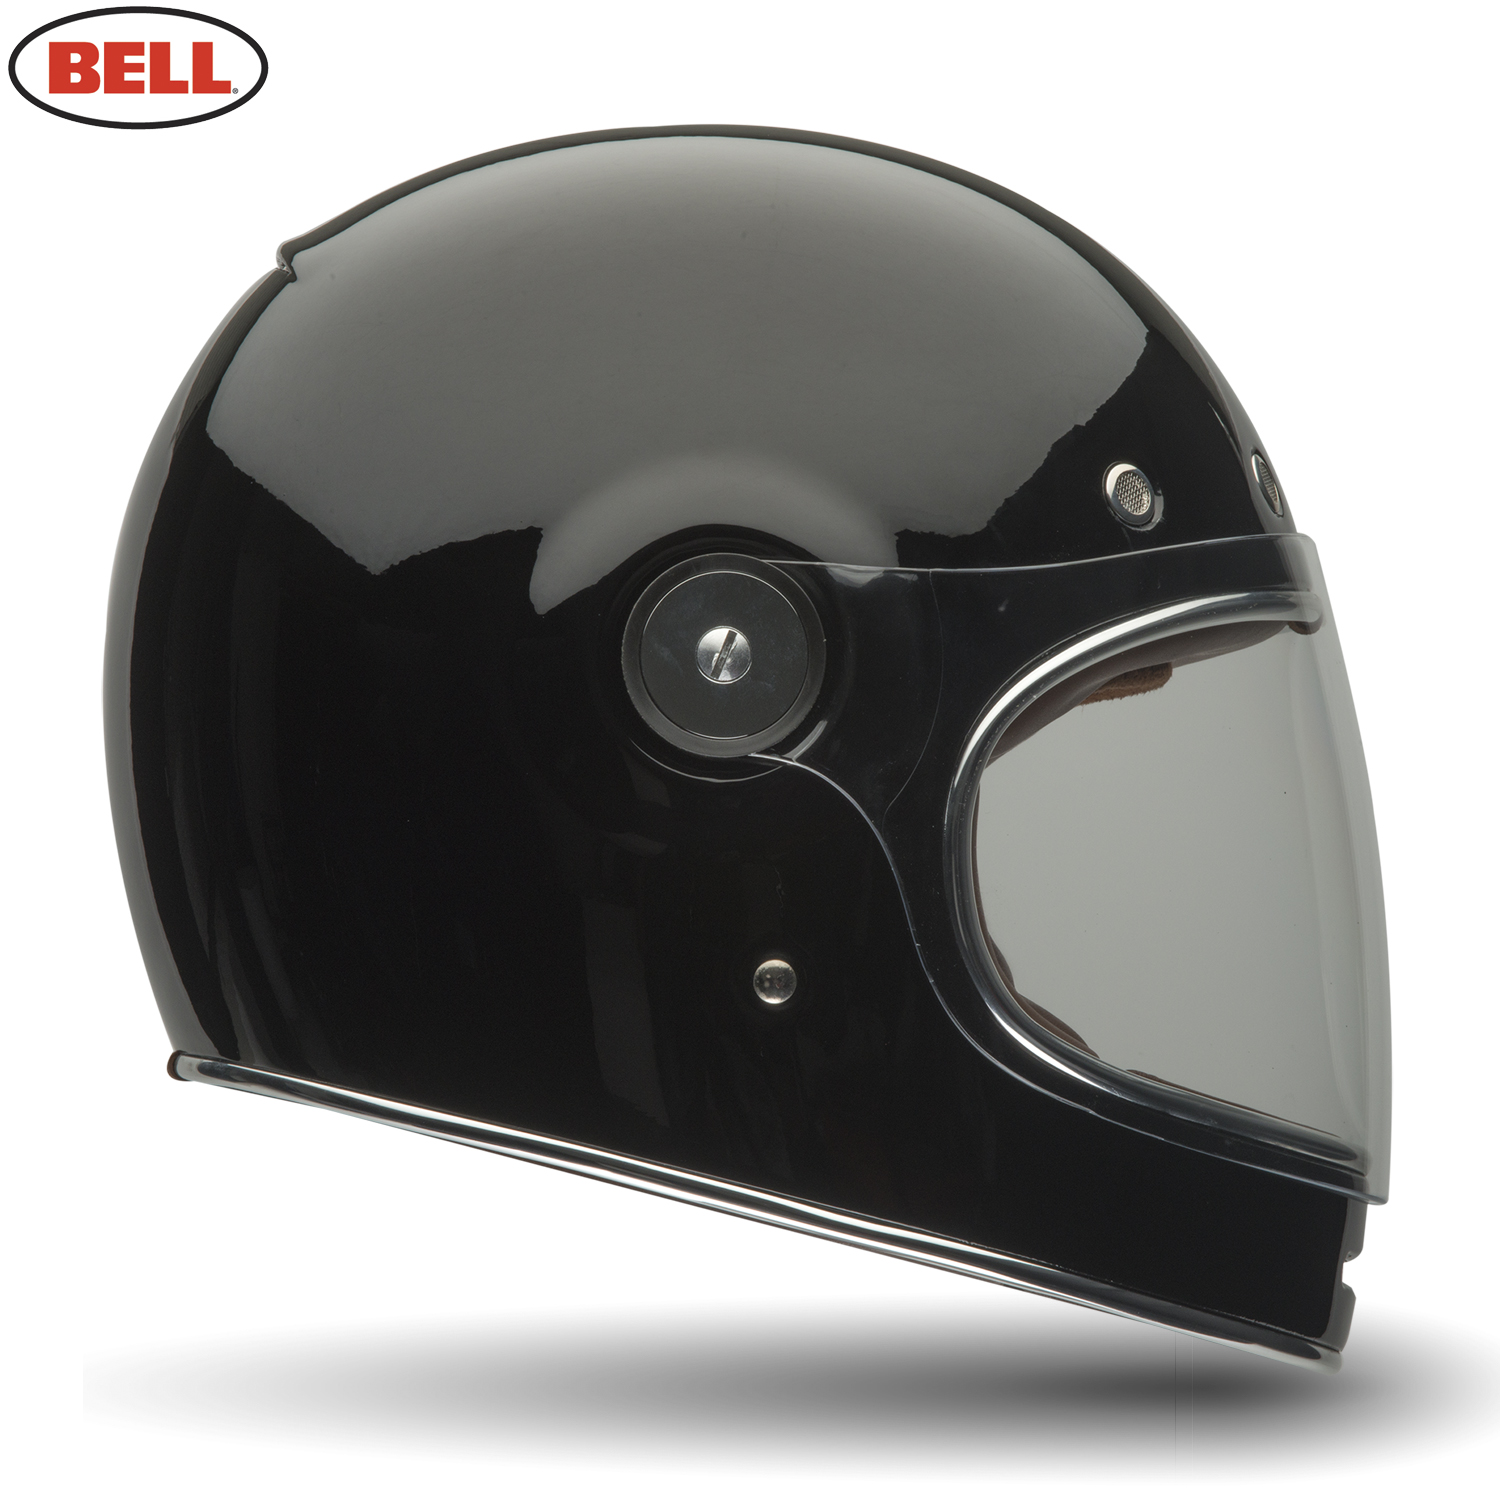 Bullitt Solid Black